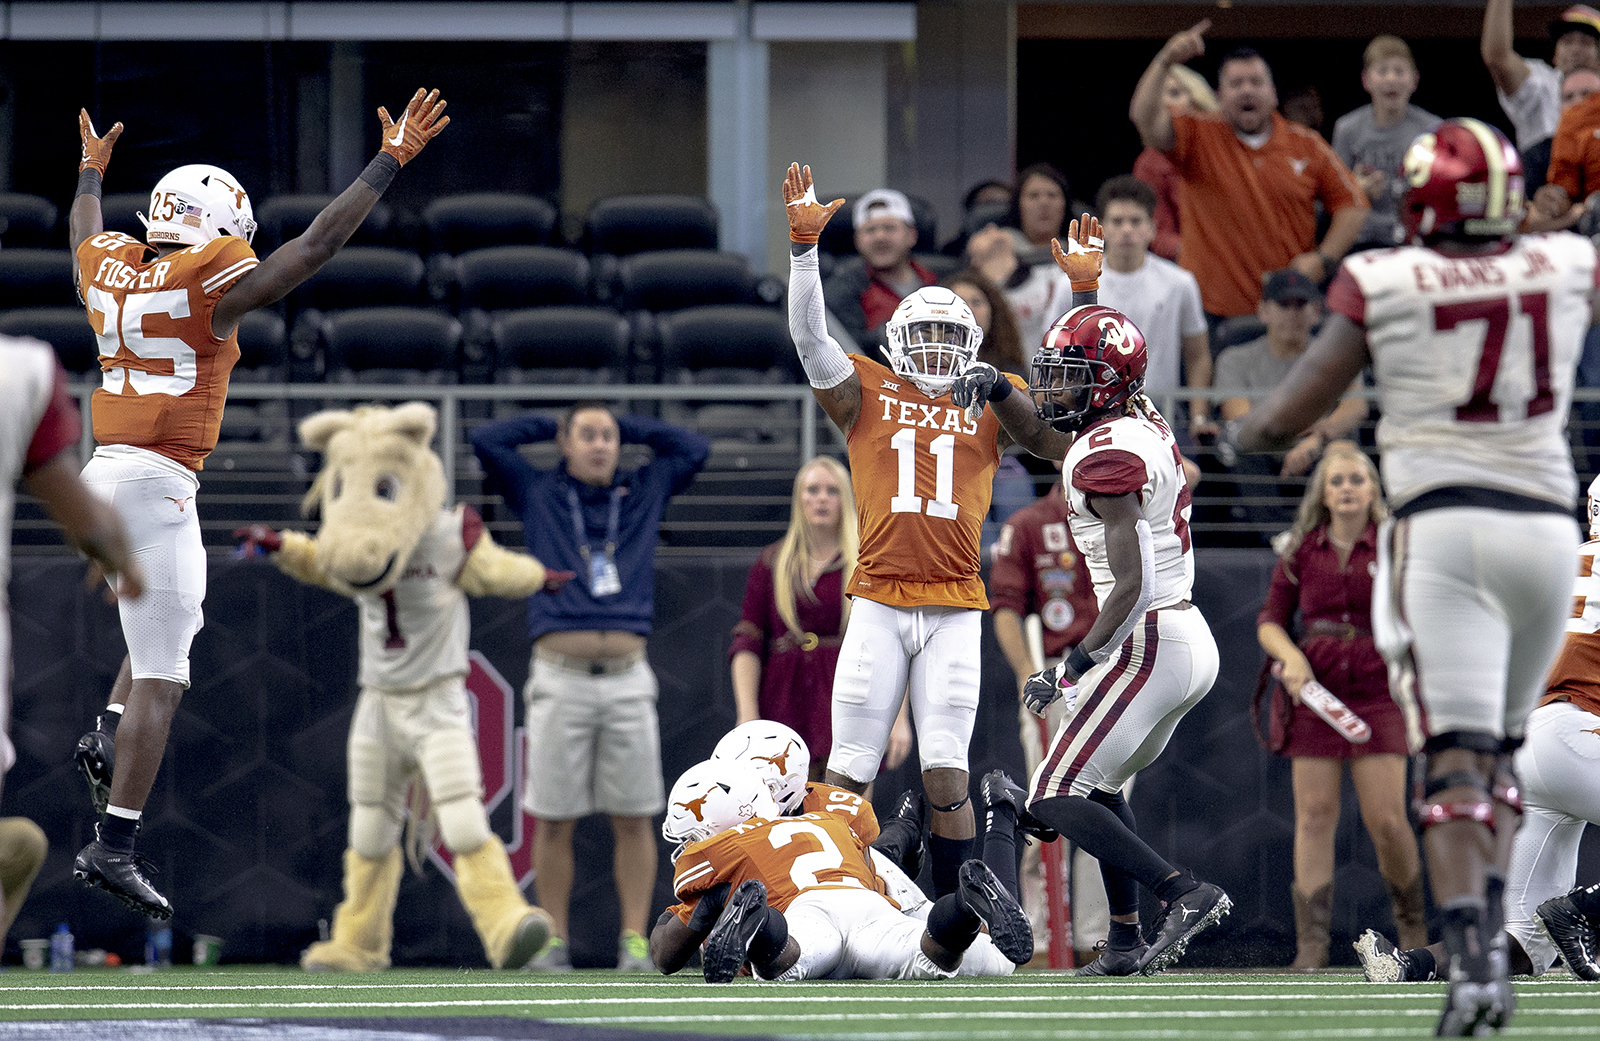 Texas players celebrate after defensive back Brandon Jones (19) recovered a fumble by Oklahoma wide receiver CeeDee Lamb (2) during the Big 12 Conference championship NCAA college football game in Arlington, Texas, on Saturday, Dec. 1, 2018. (Nick Wagner/Austin American-Statesman via AP)